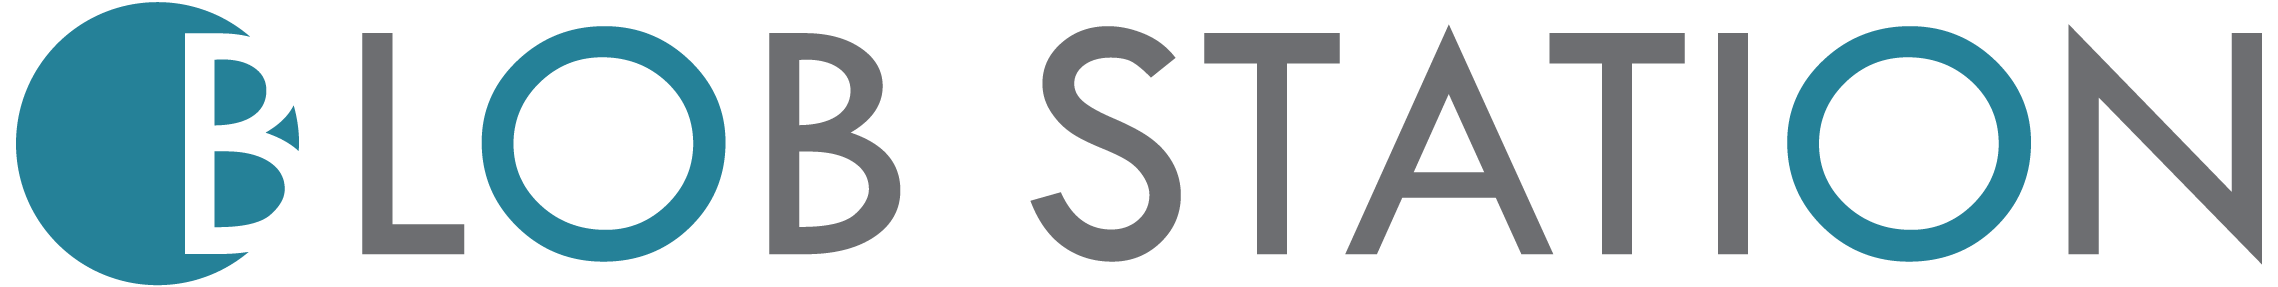 Blobstation Logo